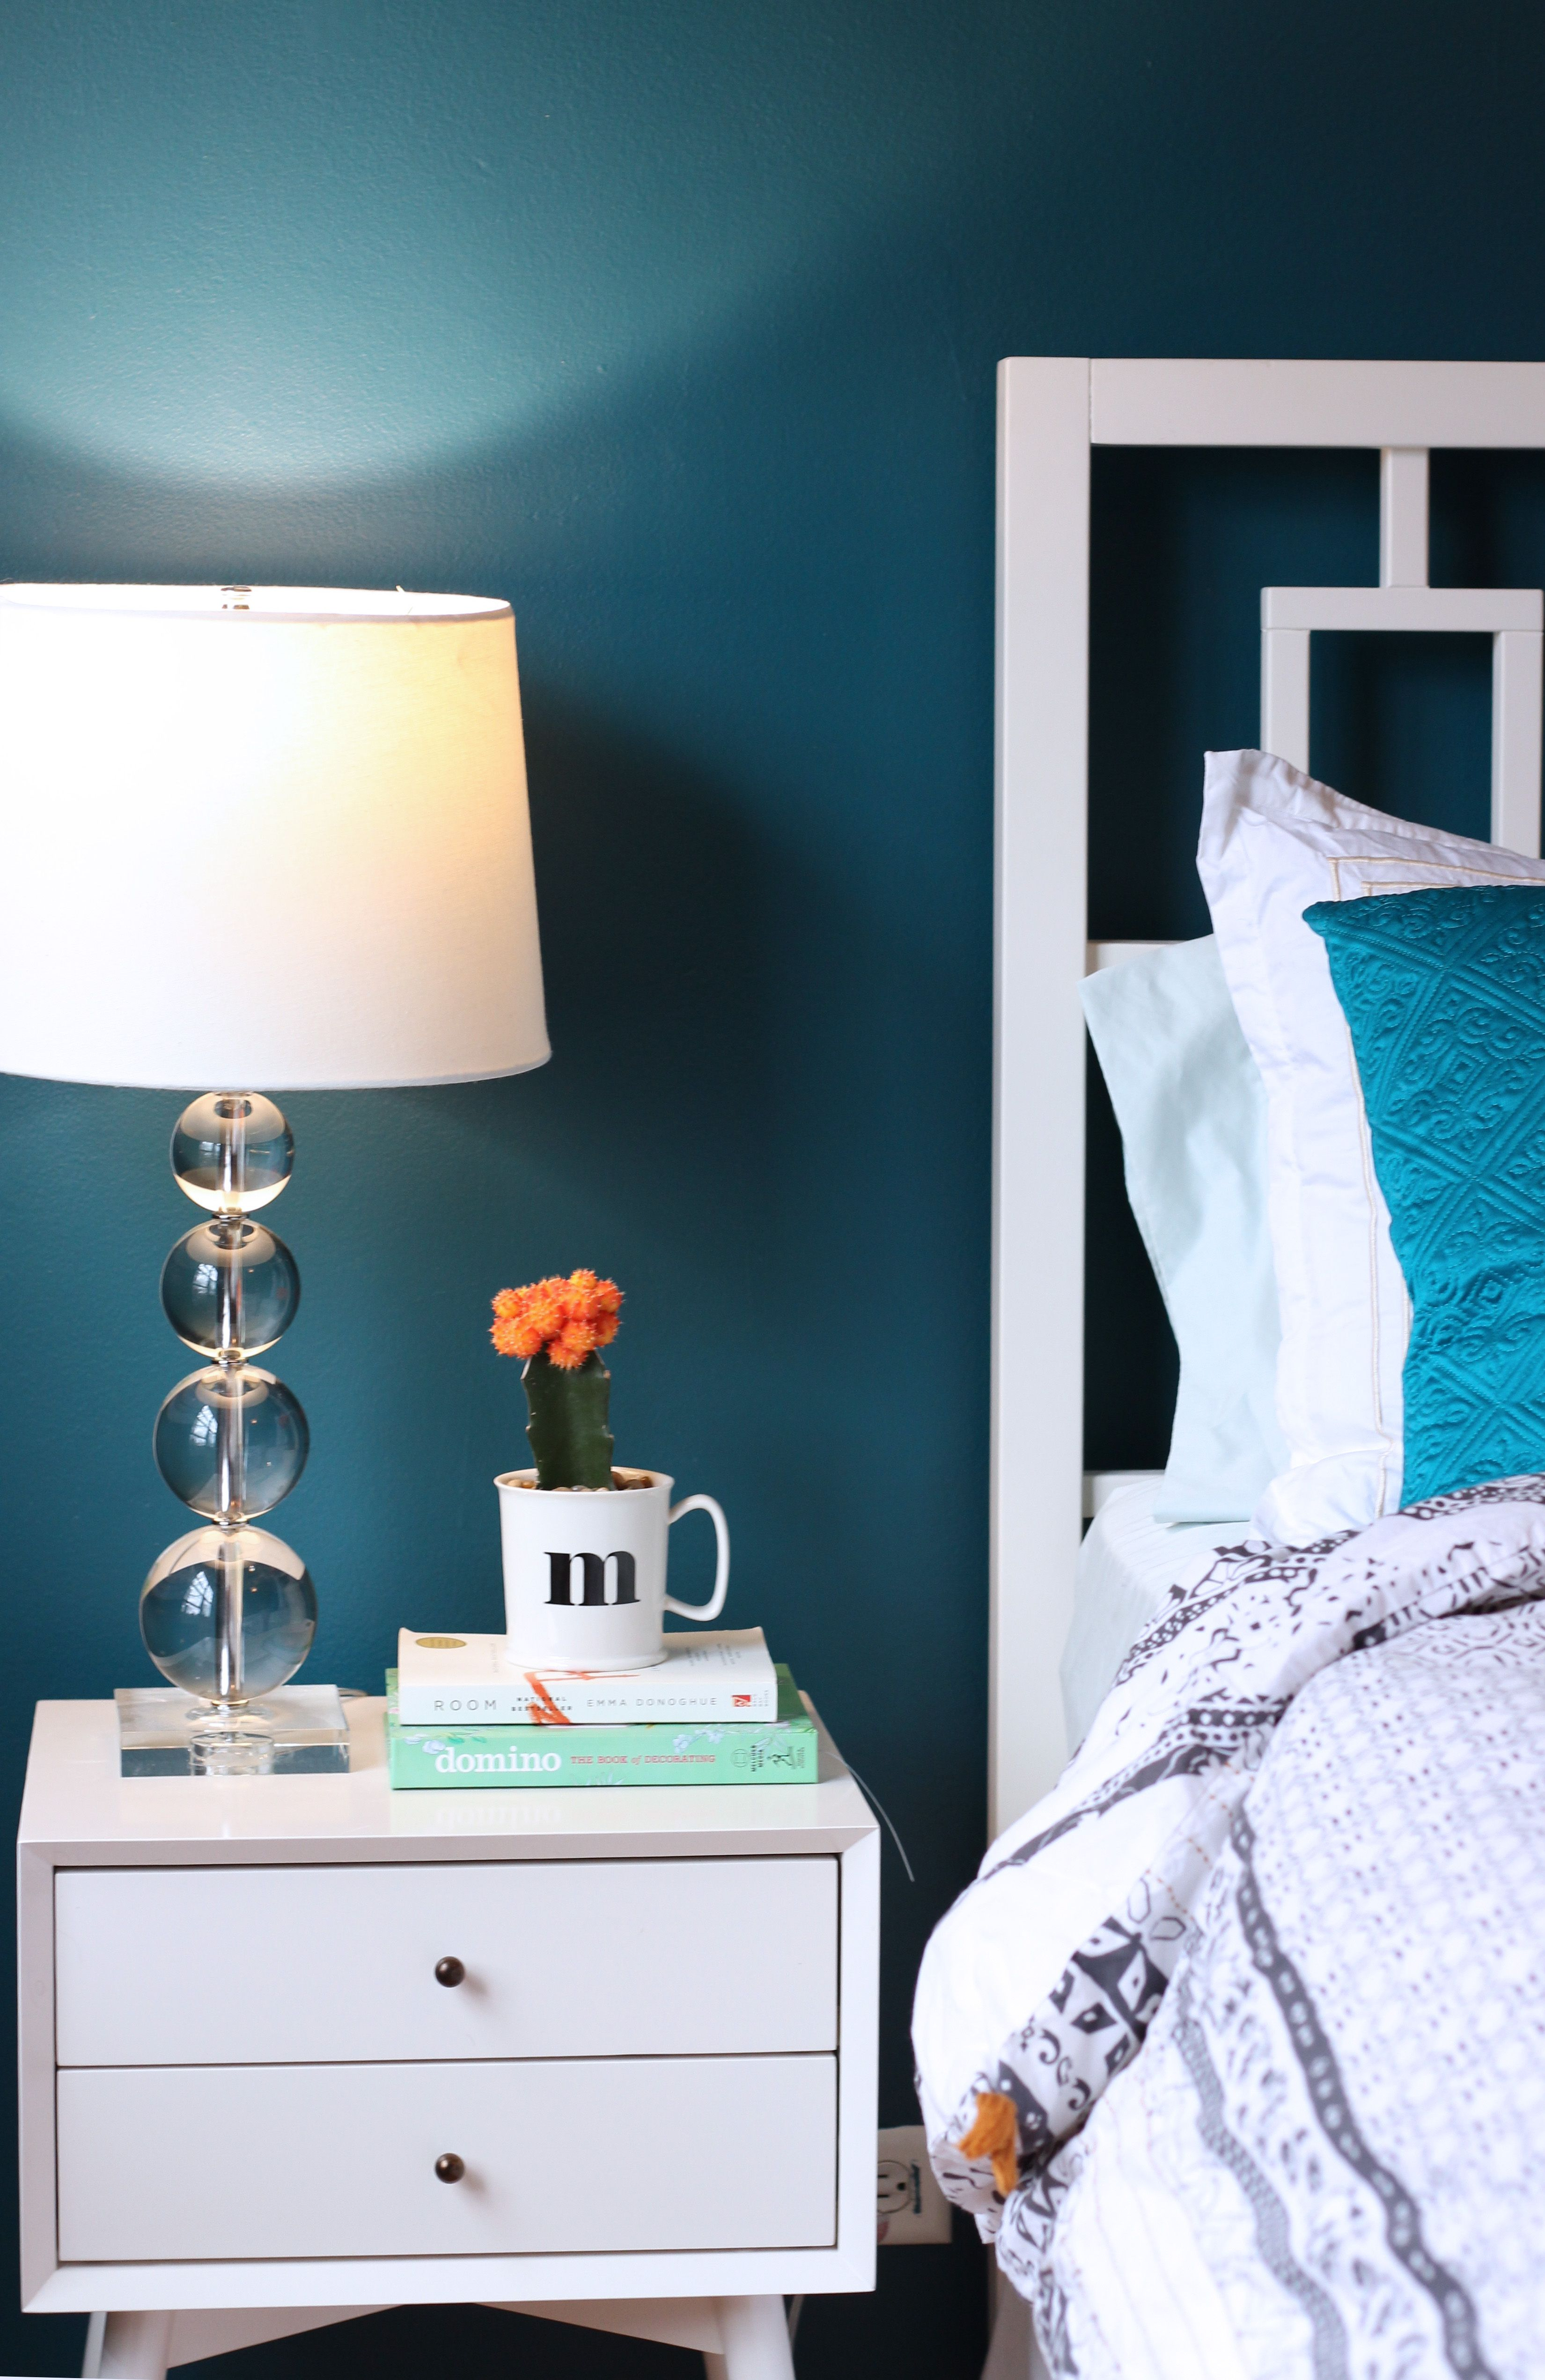 New Bedroom Paint Color Painting Lessons Learned Design